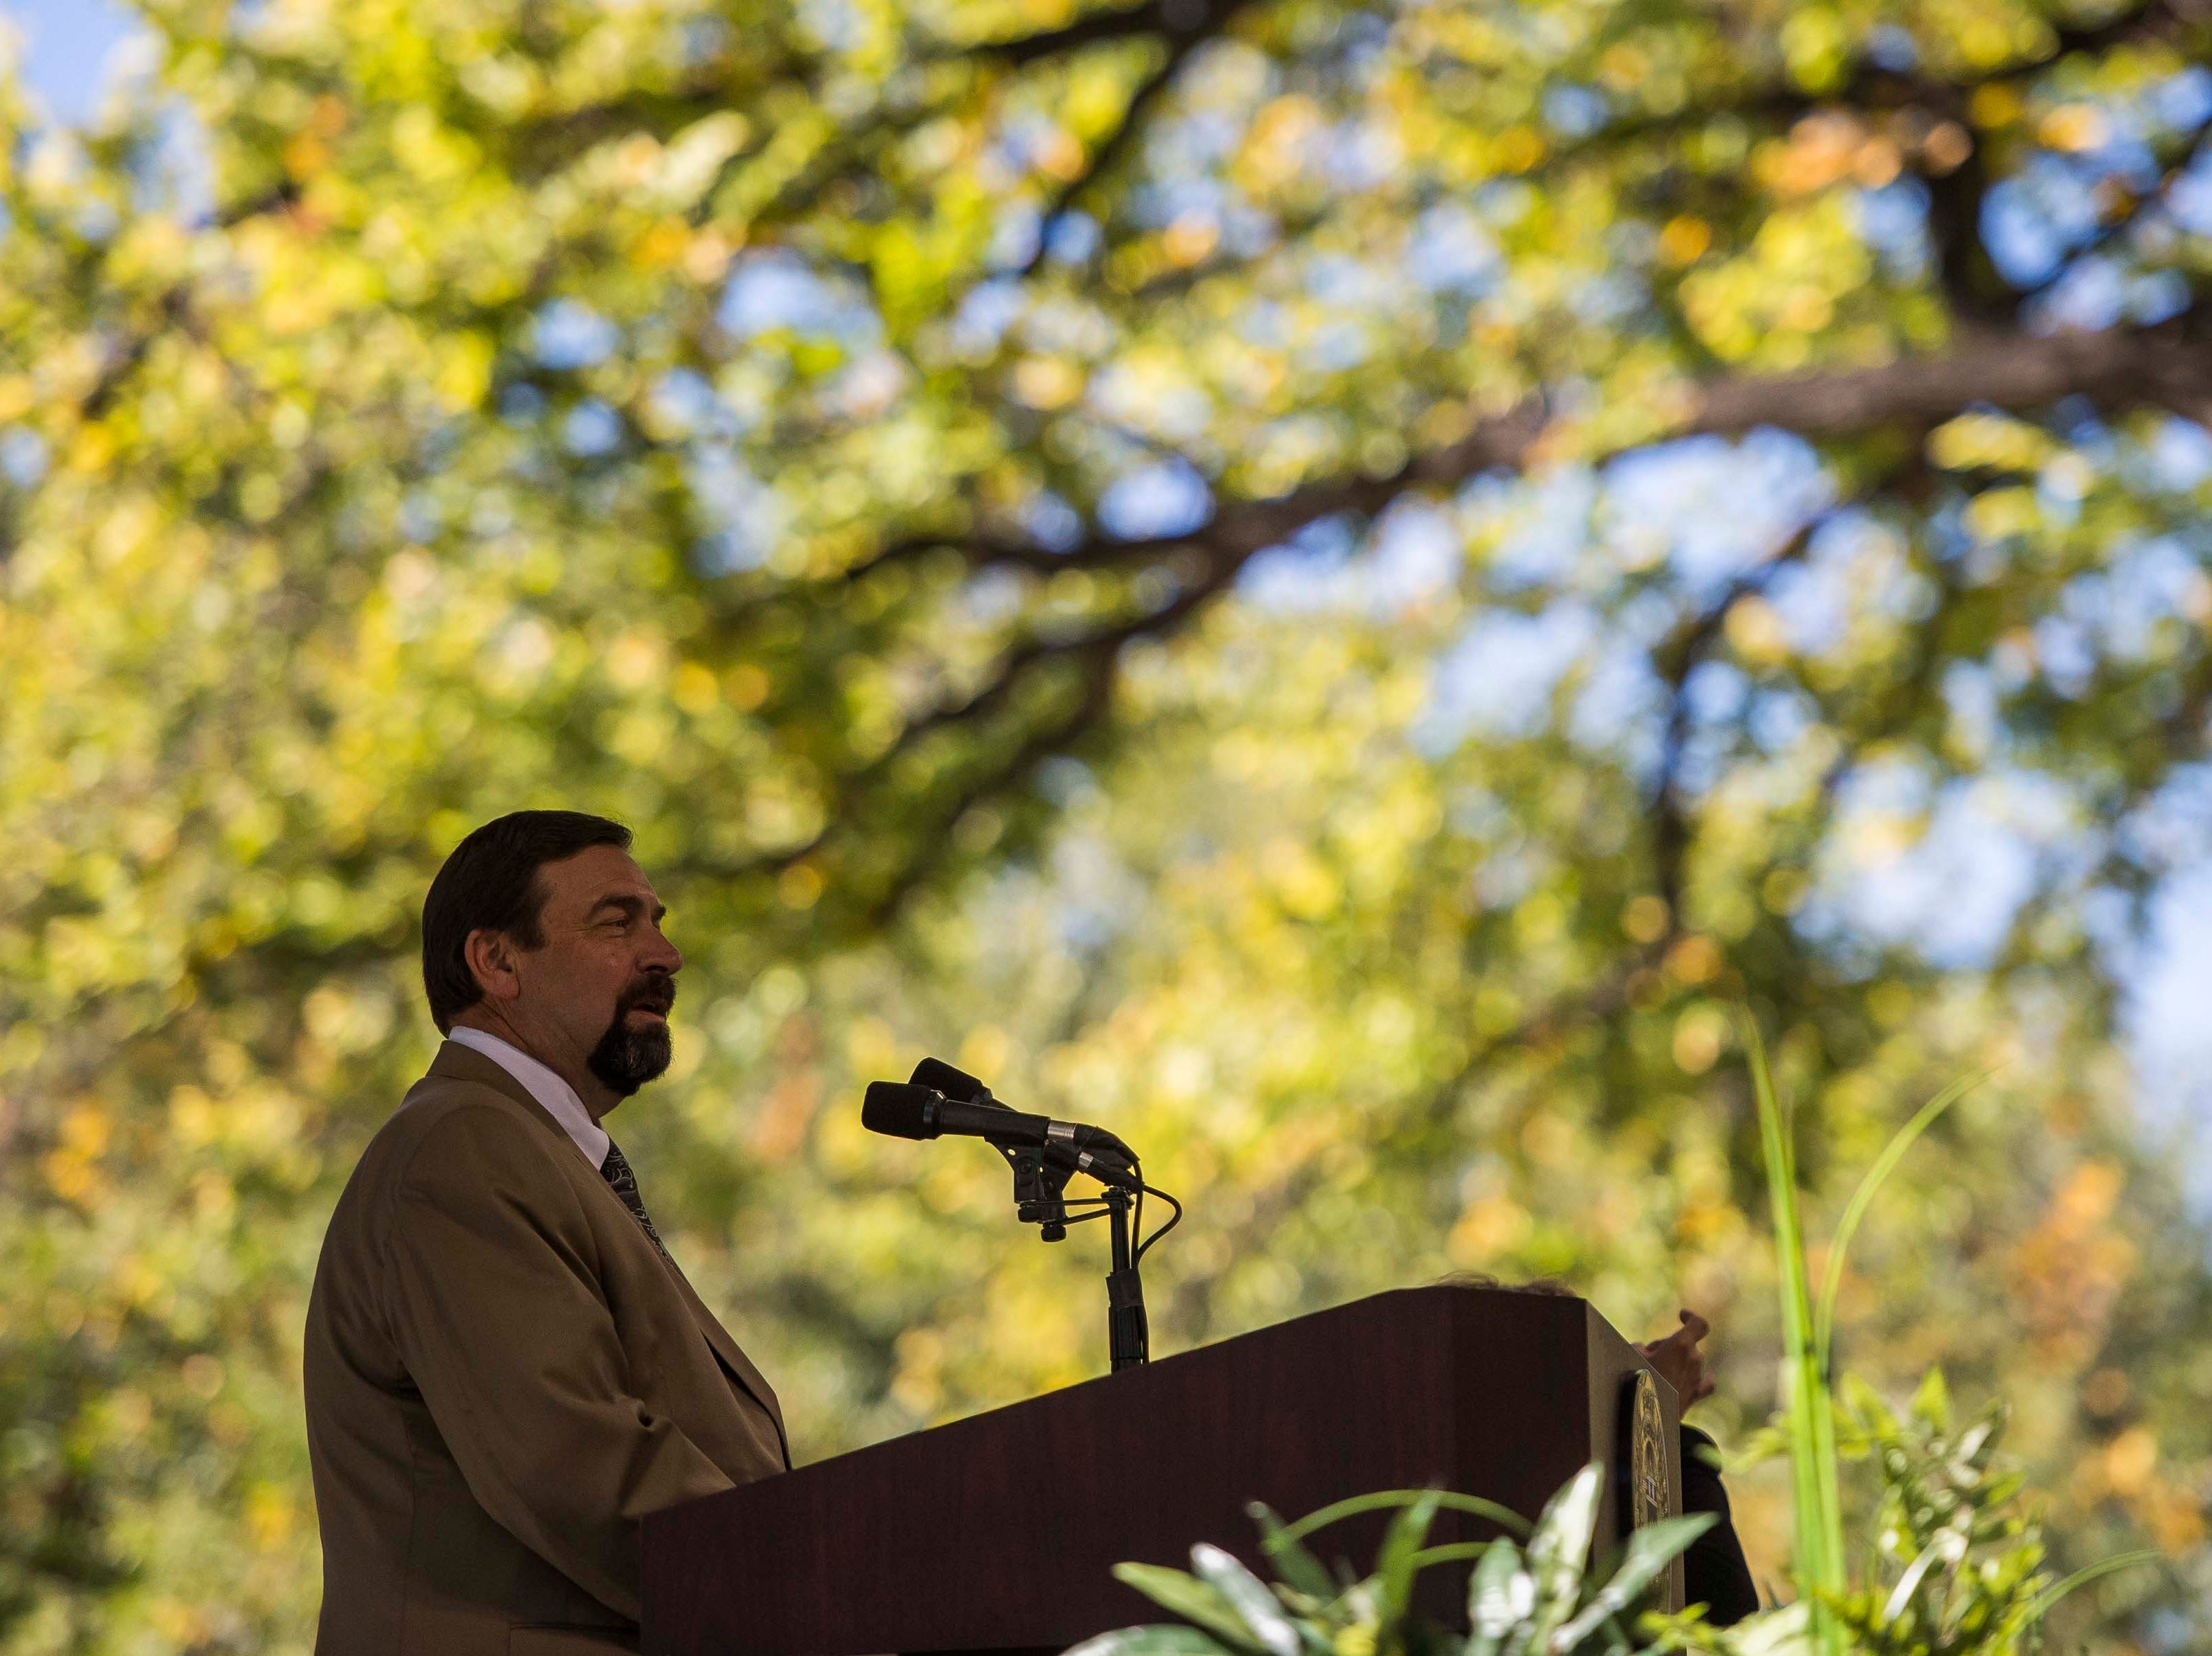 Colorado State University President Tony Frank speaks to an audience on Wednesday, Oct. 3, 2018, at the 2018 fall address on the CSU campus in Fort Collins, Colo.